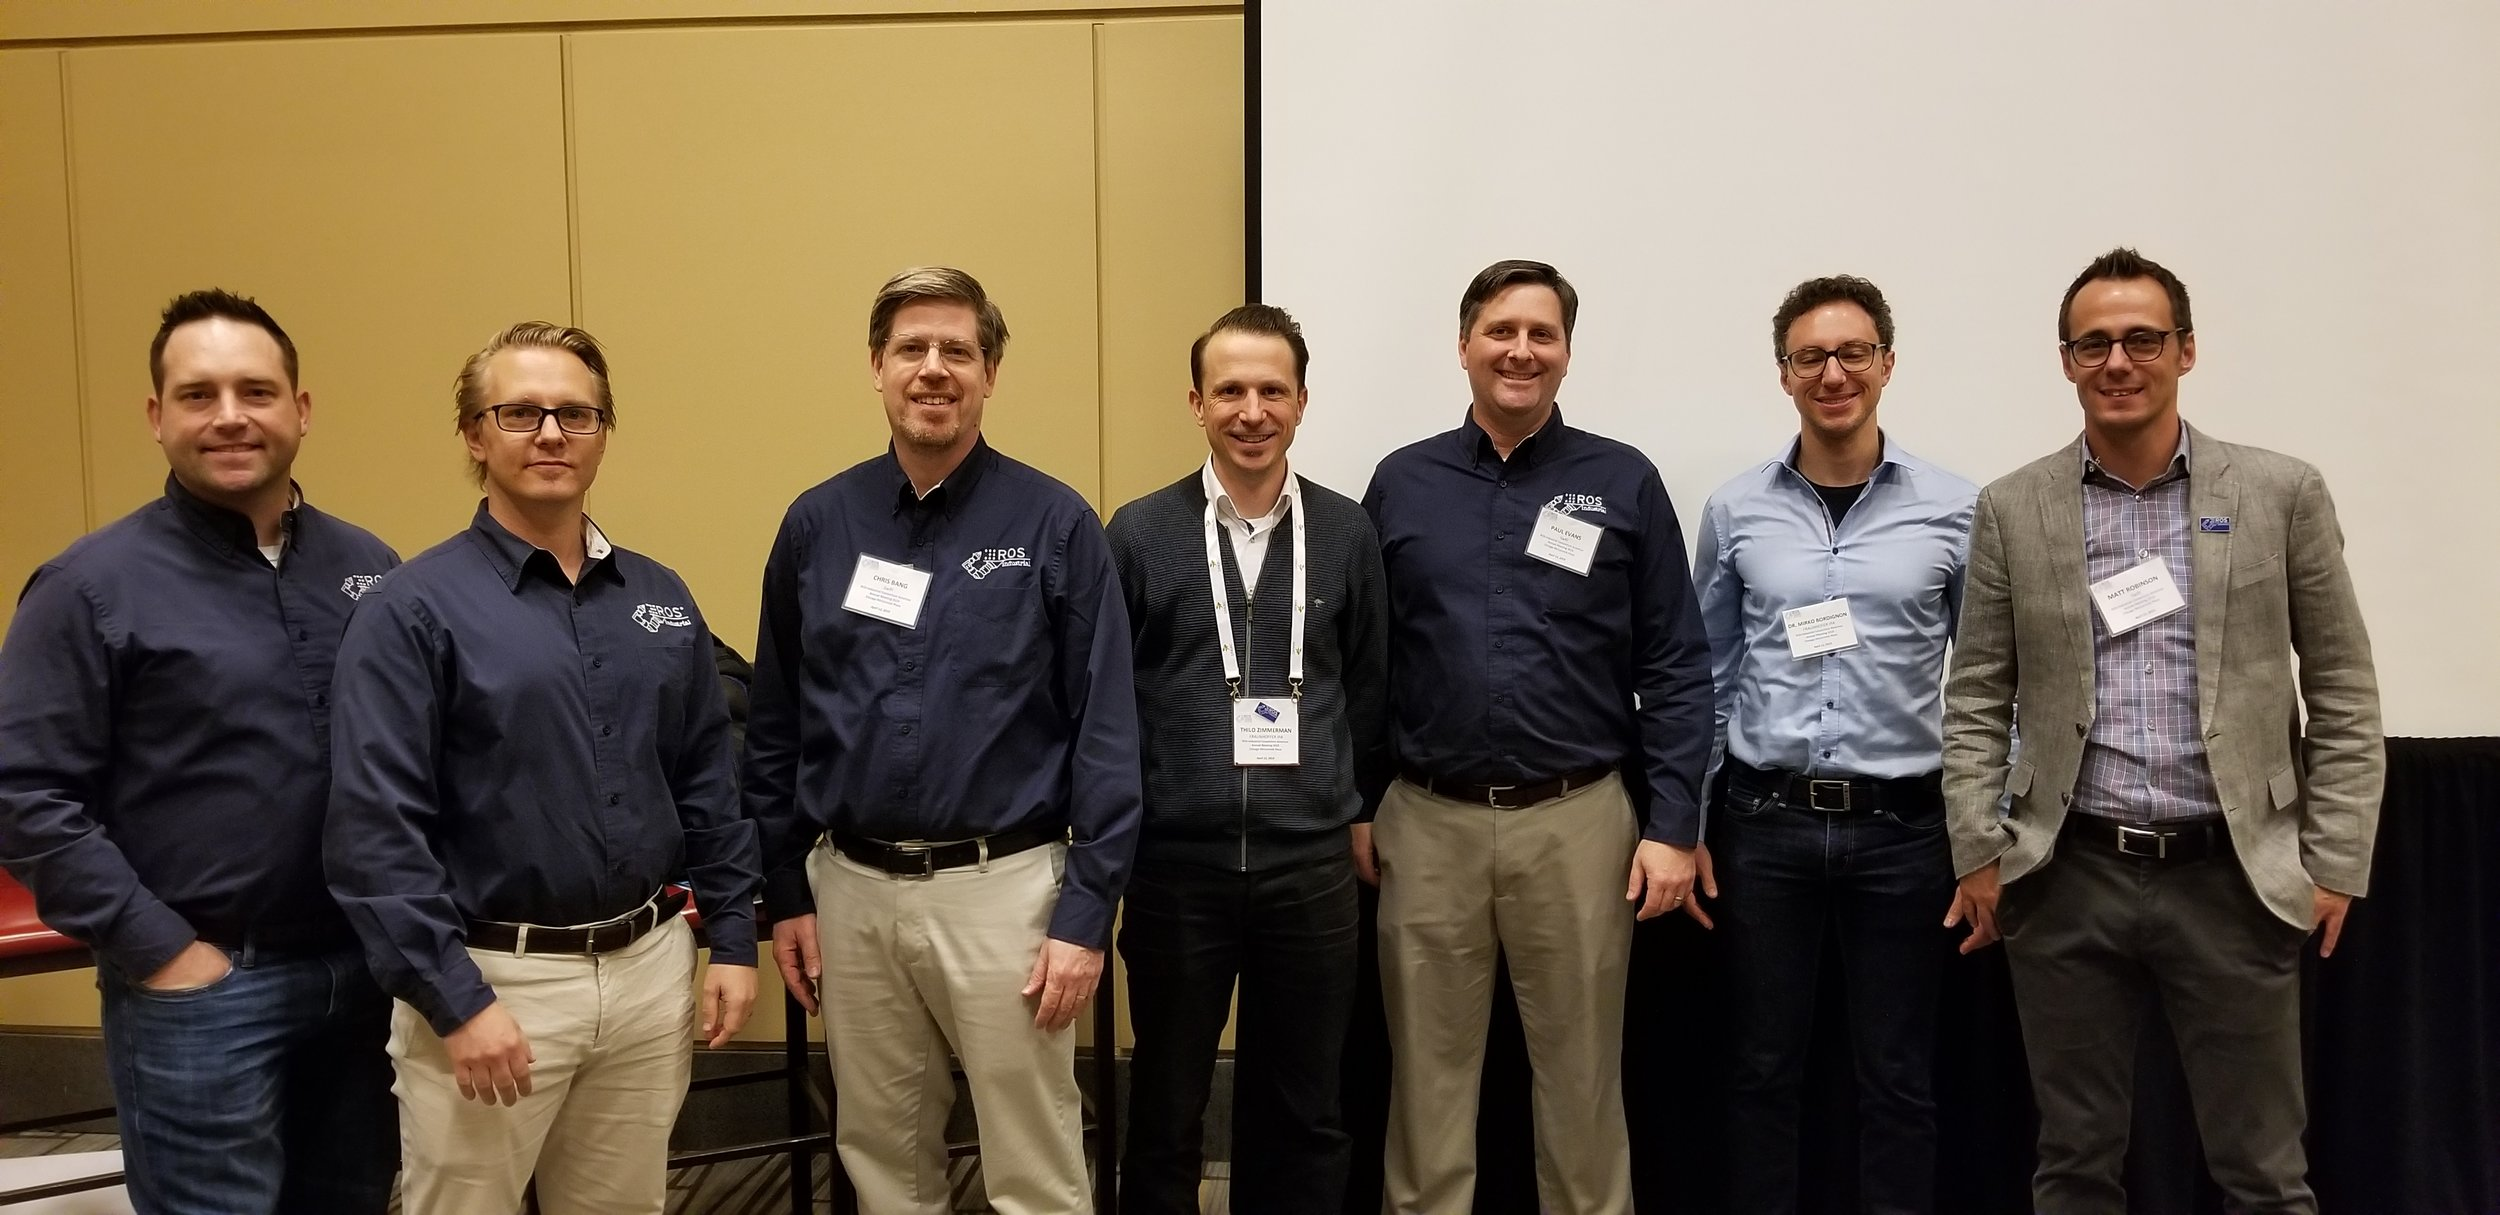 Global ROS-I Team from Left to Right - Levi Armstrong (SwRI), Erik Unemyr (ROS-I AP), Chris Bang (SwRI), Thilo Zimmerman (Fraunhofer IPA), Paul Evans (SwRI), Mirko Bordignon (Fraunhofer IPA), and Matt Robinson (SwRI)